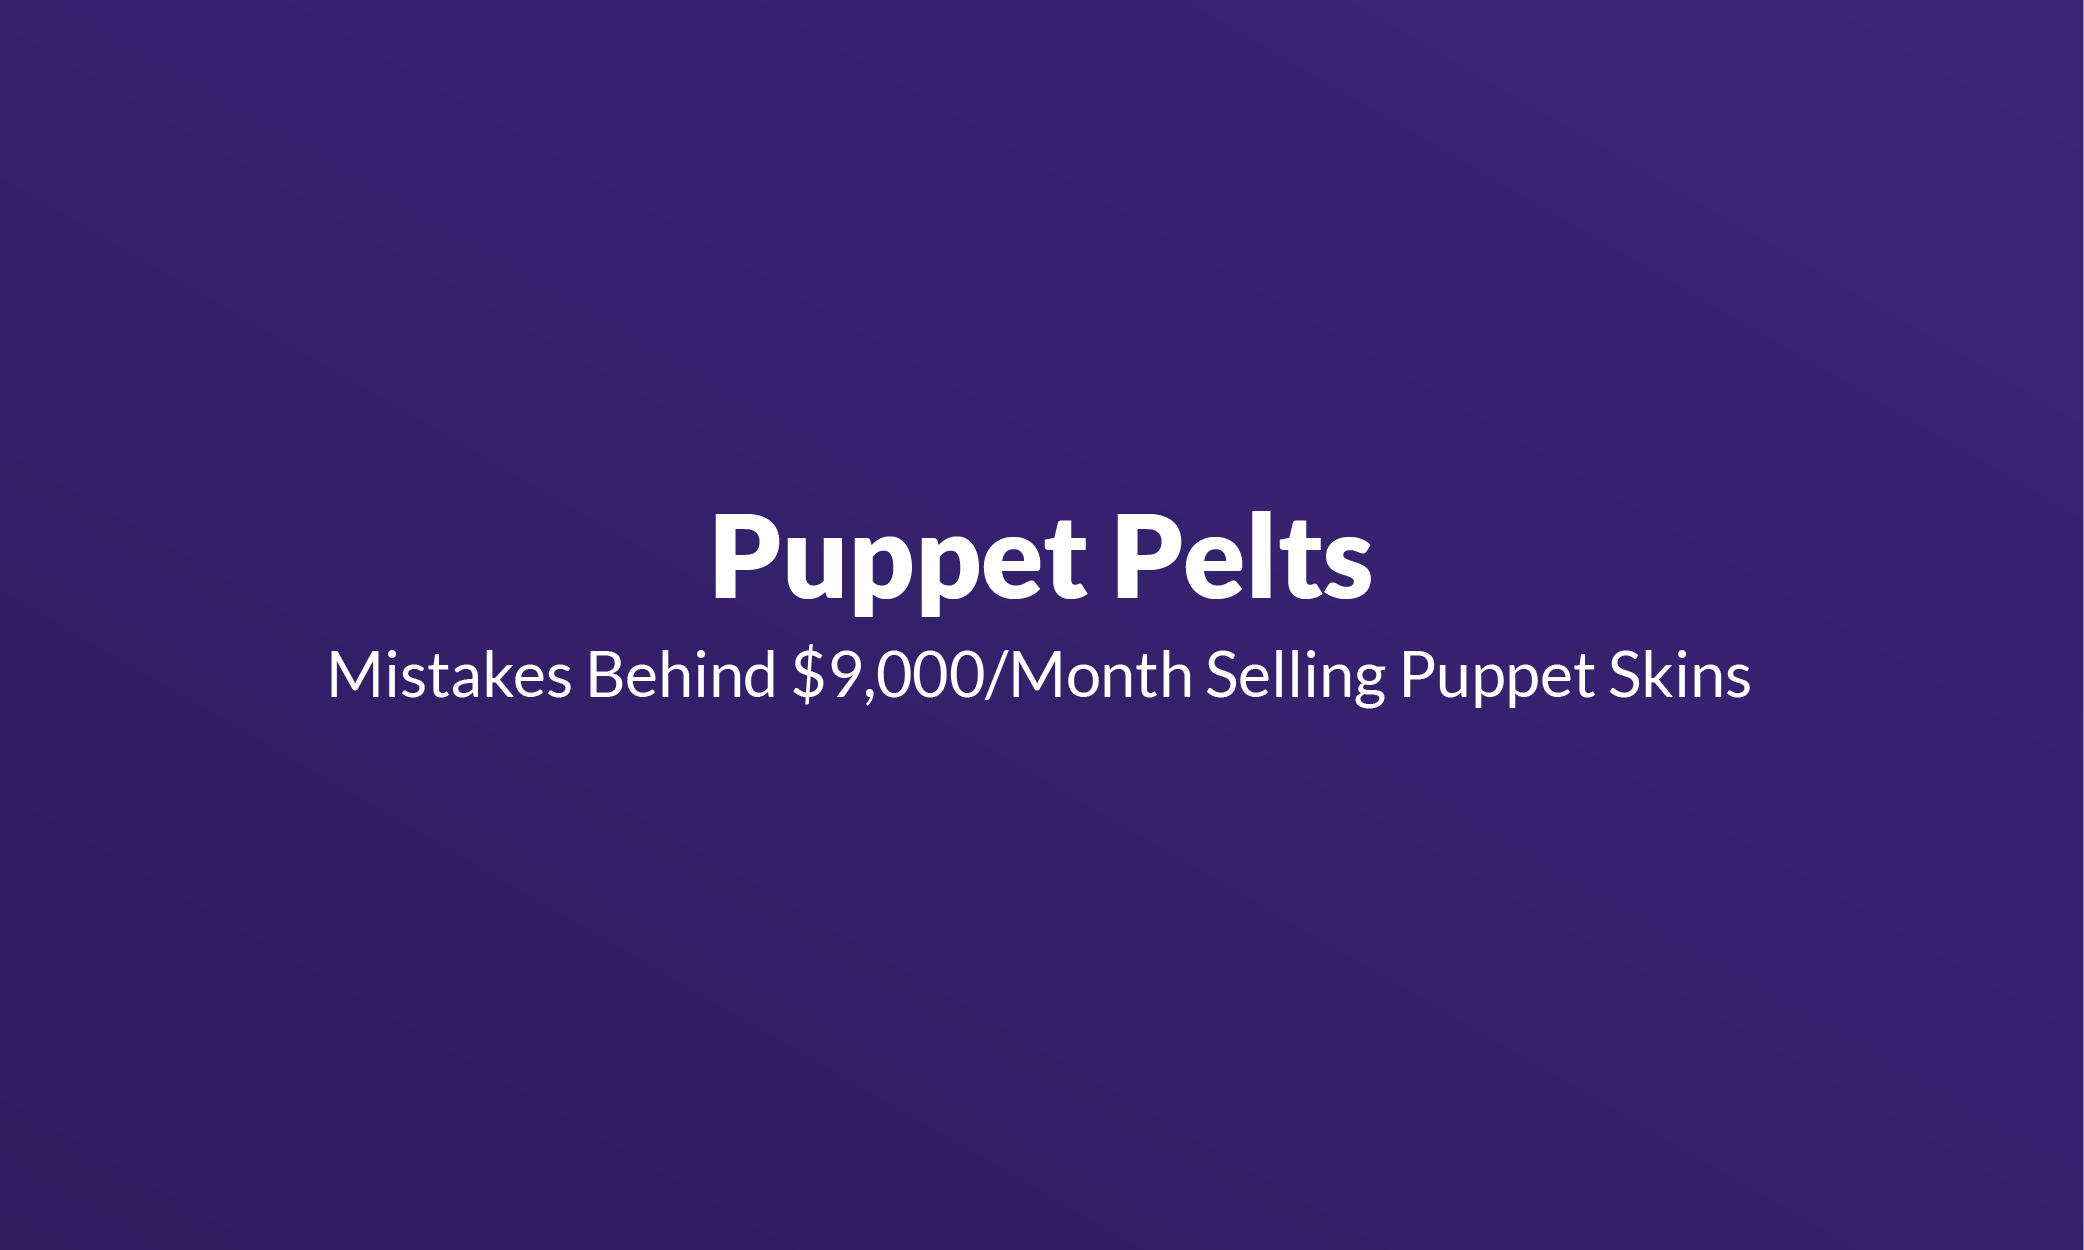 Puppet Pelts Mistakes